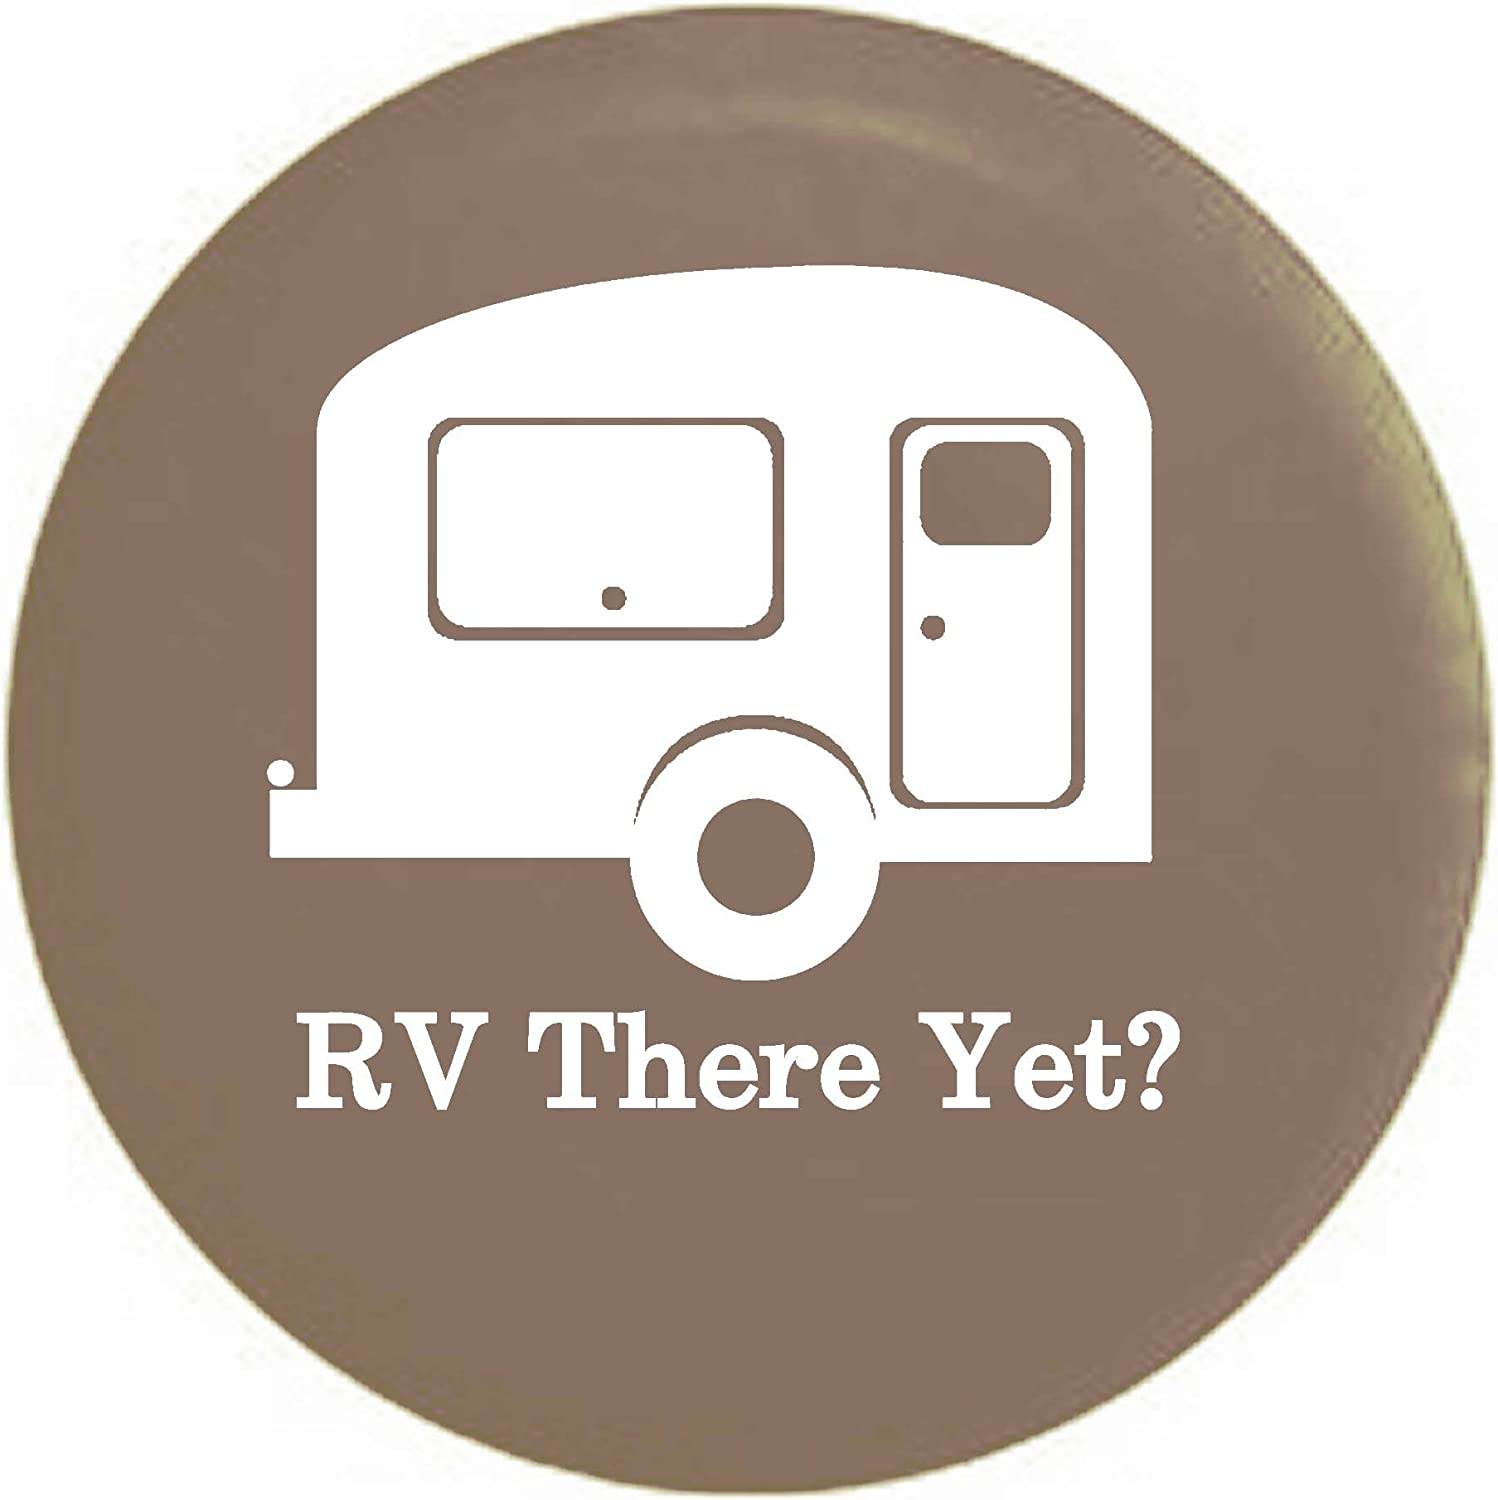 TravelCamper Trailer RV Spare Tire Cover OEM Vinyl Tan 31 in Pike RV There Yet